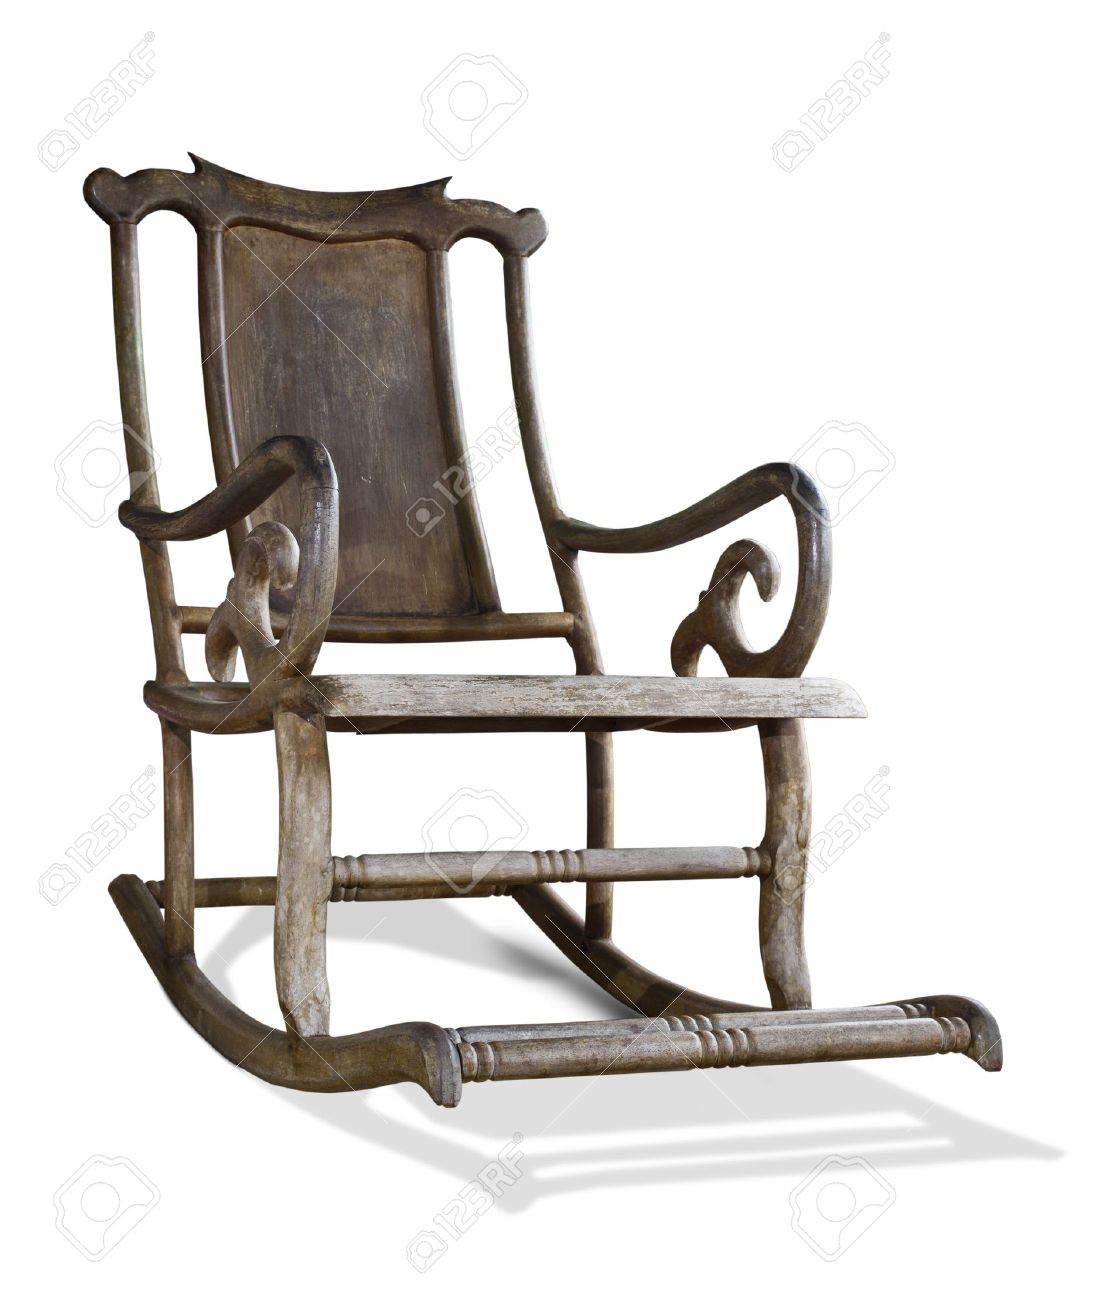 Incredible Old Wooden Rocking Chair Isolated On White Background Ncnpc Chair Design For Home Ncnpcorg